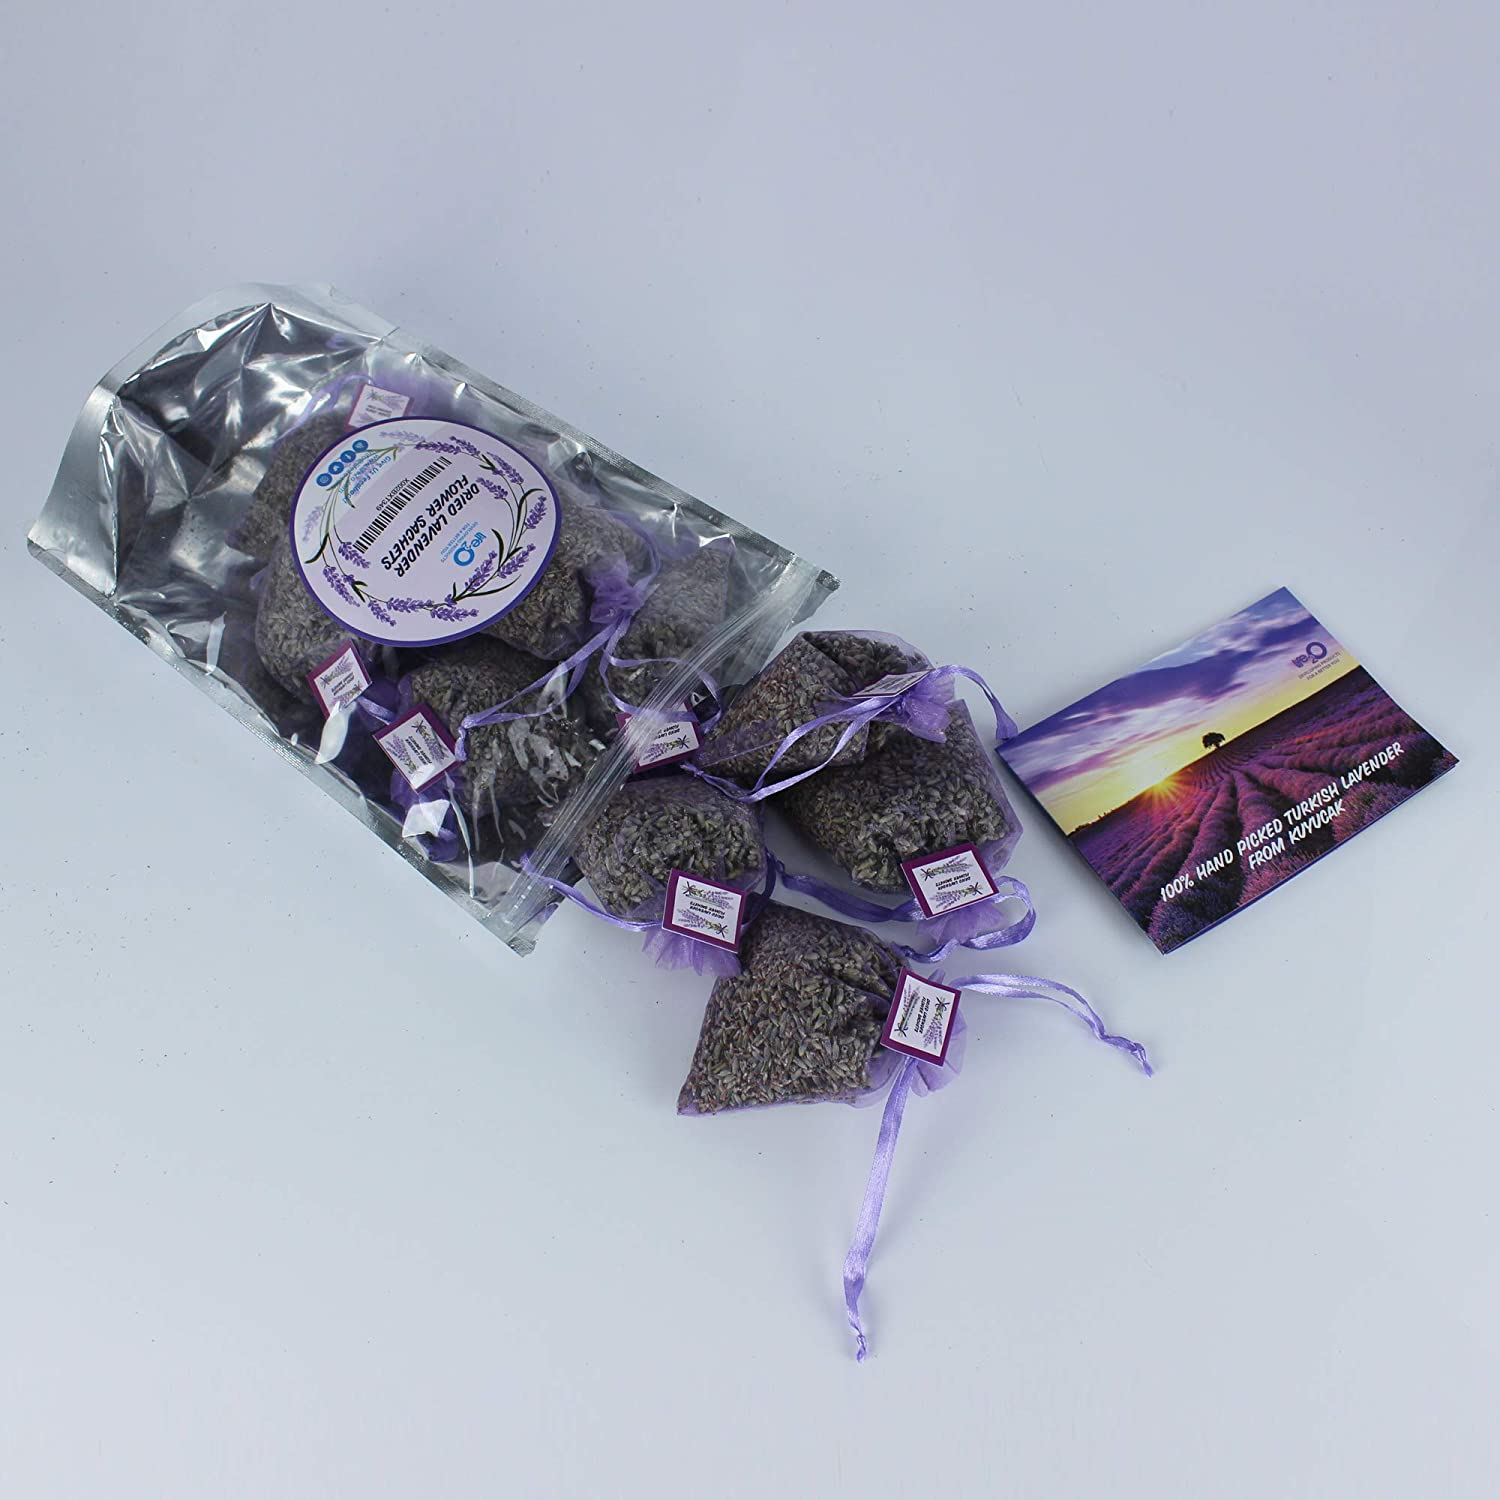 Turkish Lavender Sachets Bags Drawers More Potpourri Smell Of The Orient The Ferrari Of Lavender Larger Flower Buds Closet Longer Life And Potent Scent Bundle Of 10 Large Pouches Clothes